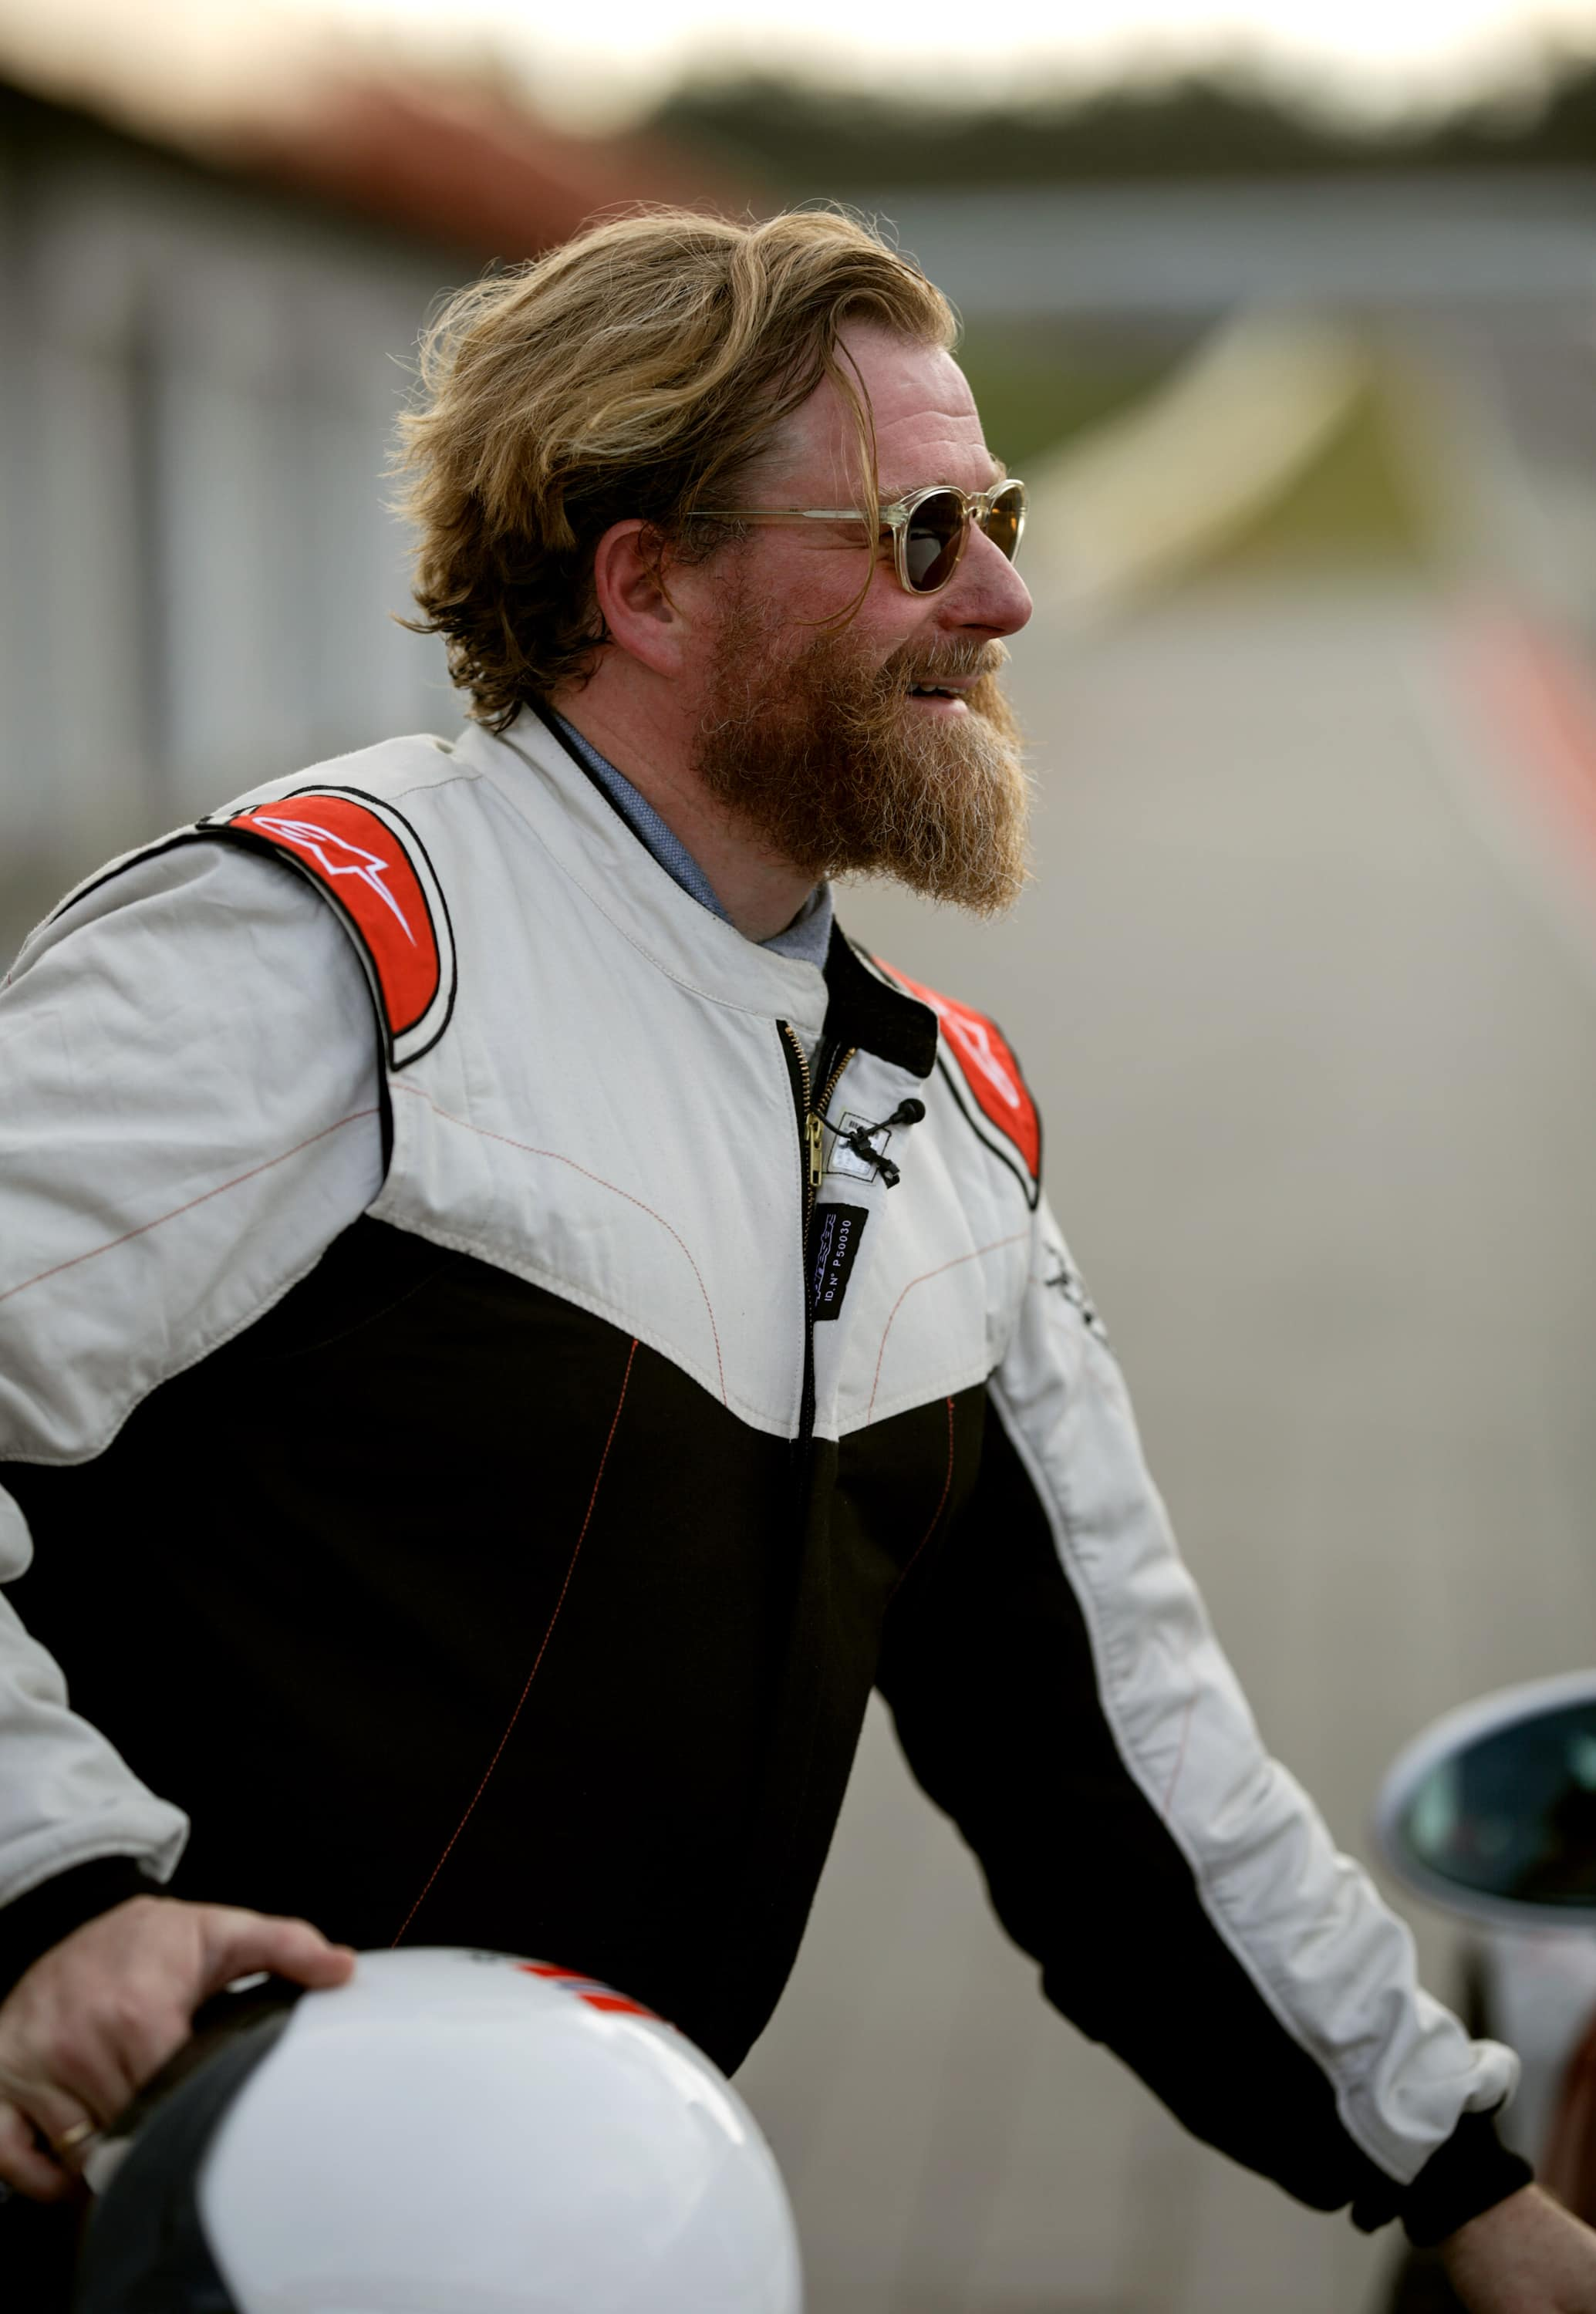 Kimm Saatvedt – Petter Schjærven Top Gear for Porsche Magazine